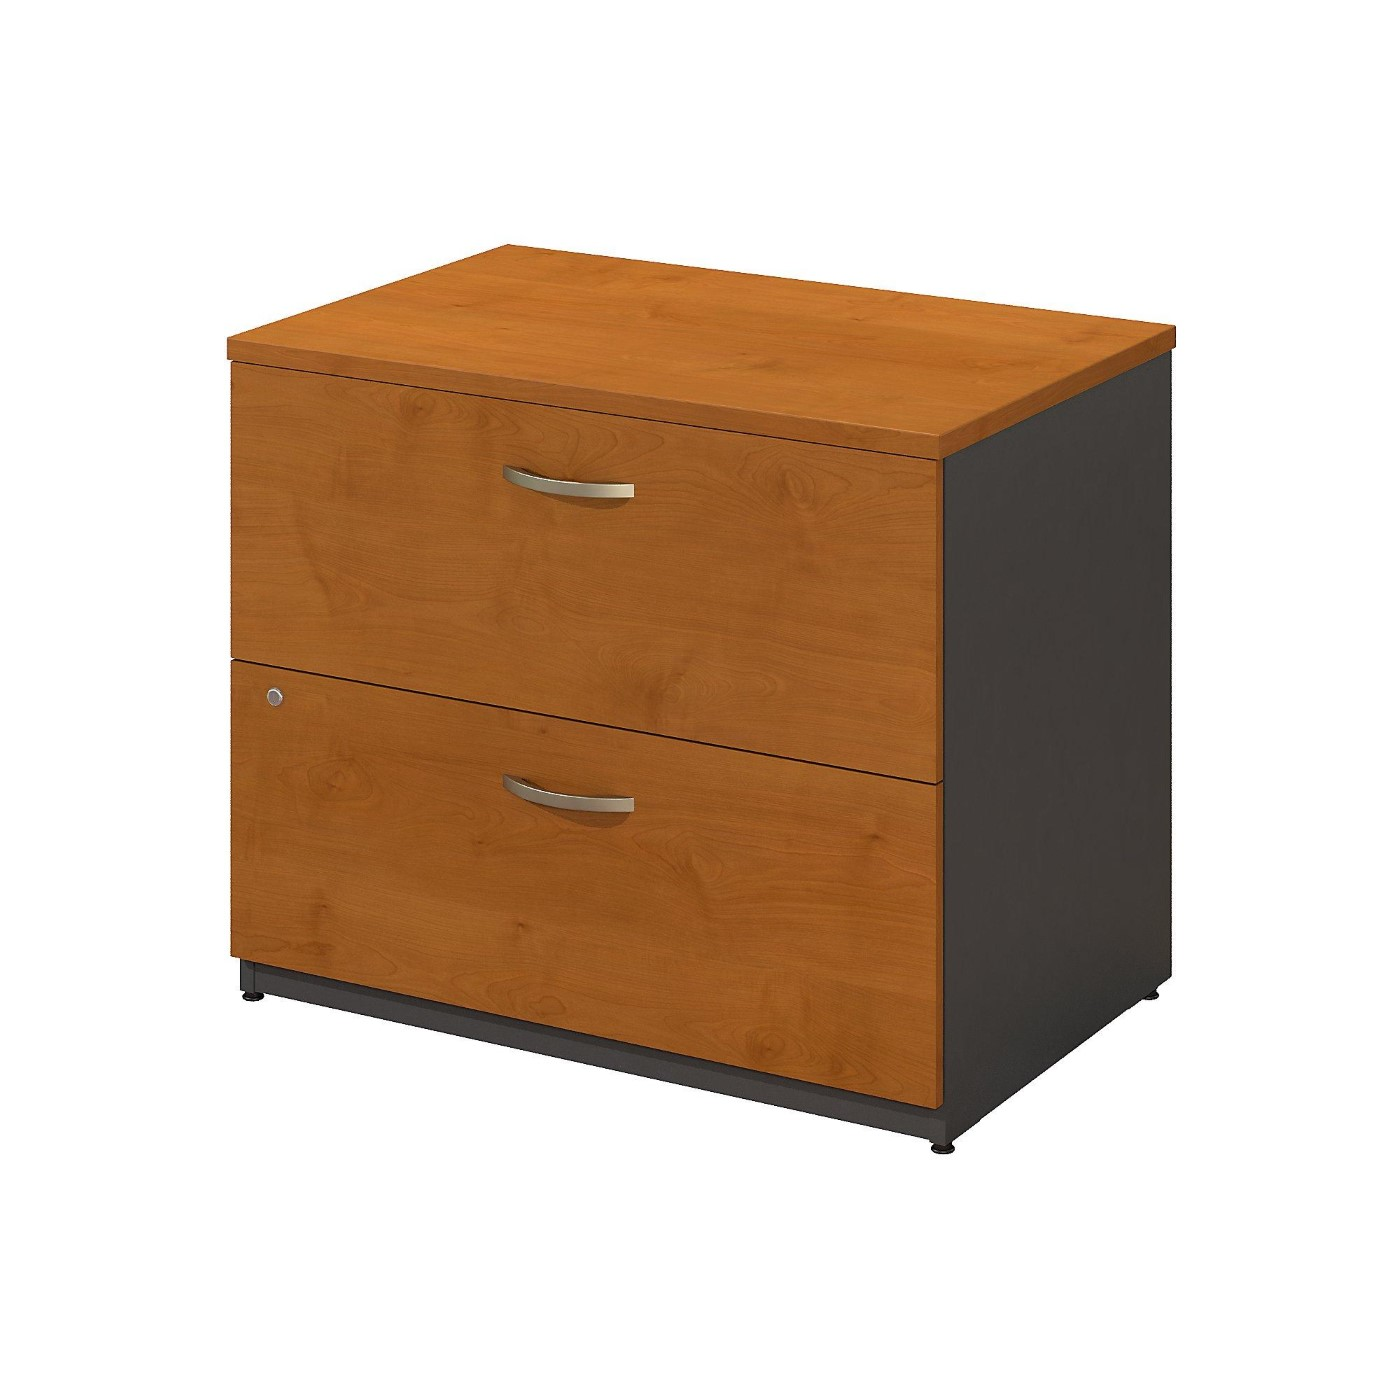 BUSH BUSINESS FURNITURE SERIES C LATERAL FILE CABINET. FREE SHIPPING.  SALE DEDUCT 10% MORE ENTER '10percent' IN COUPON CODE BOX WHILE CHECKING OUT. ENDS 5-31-20.